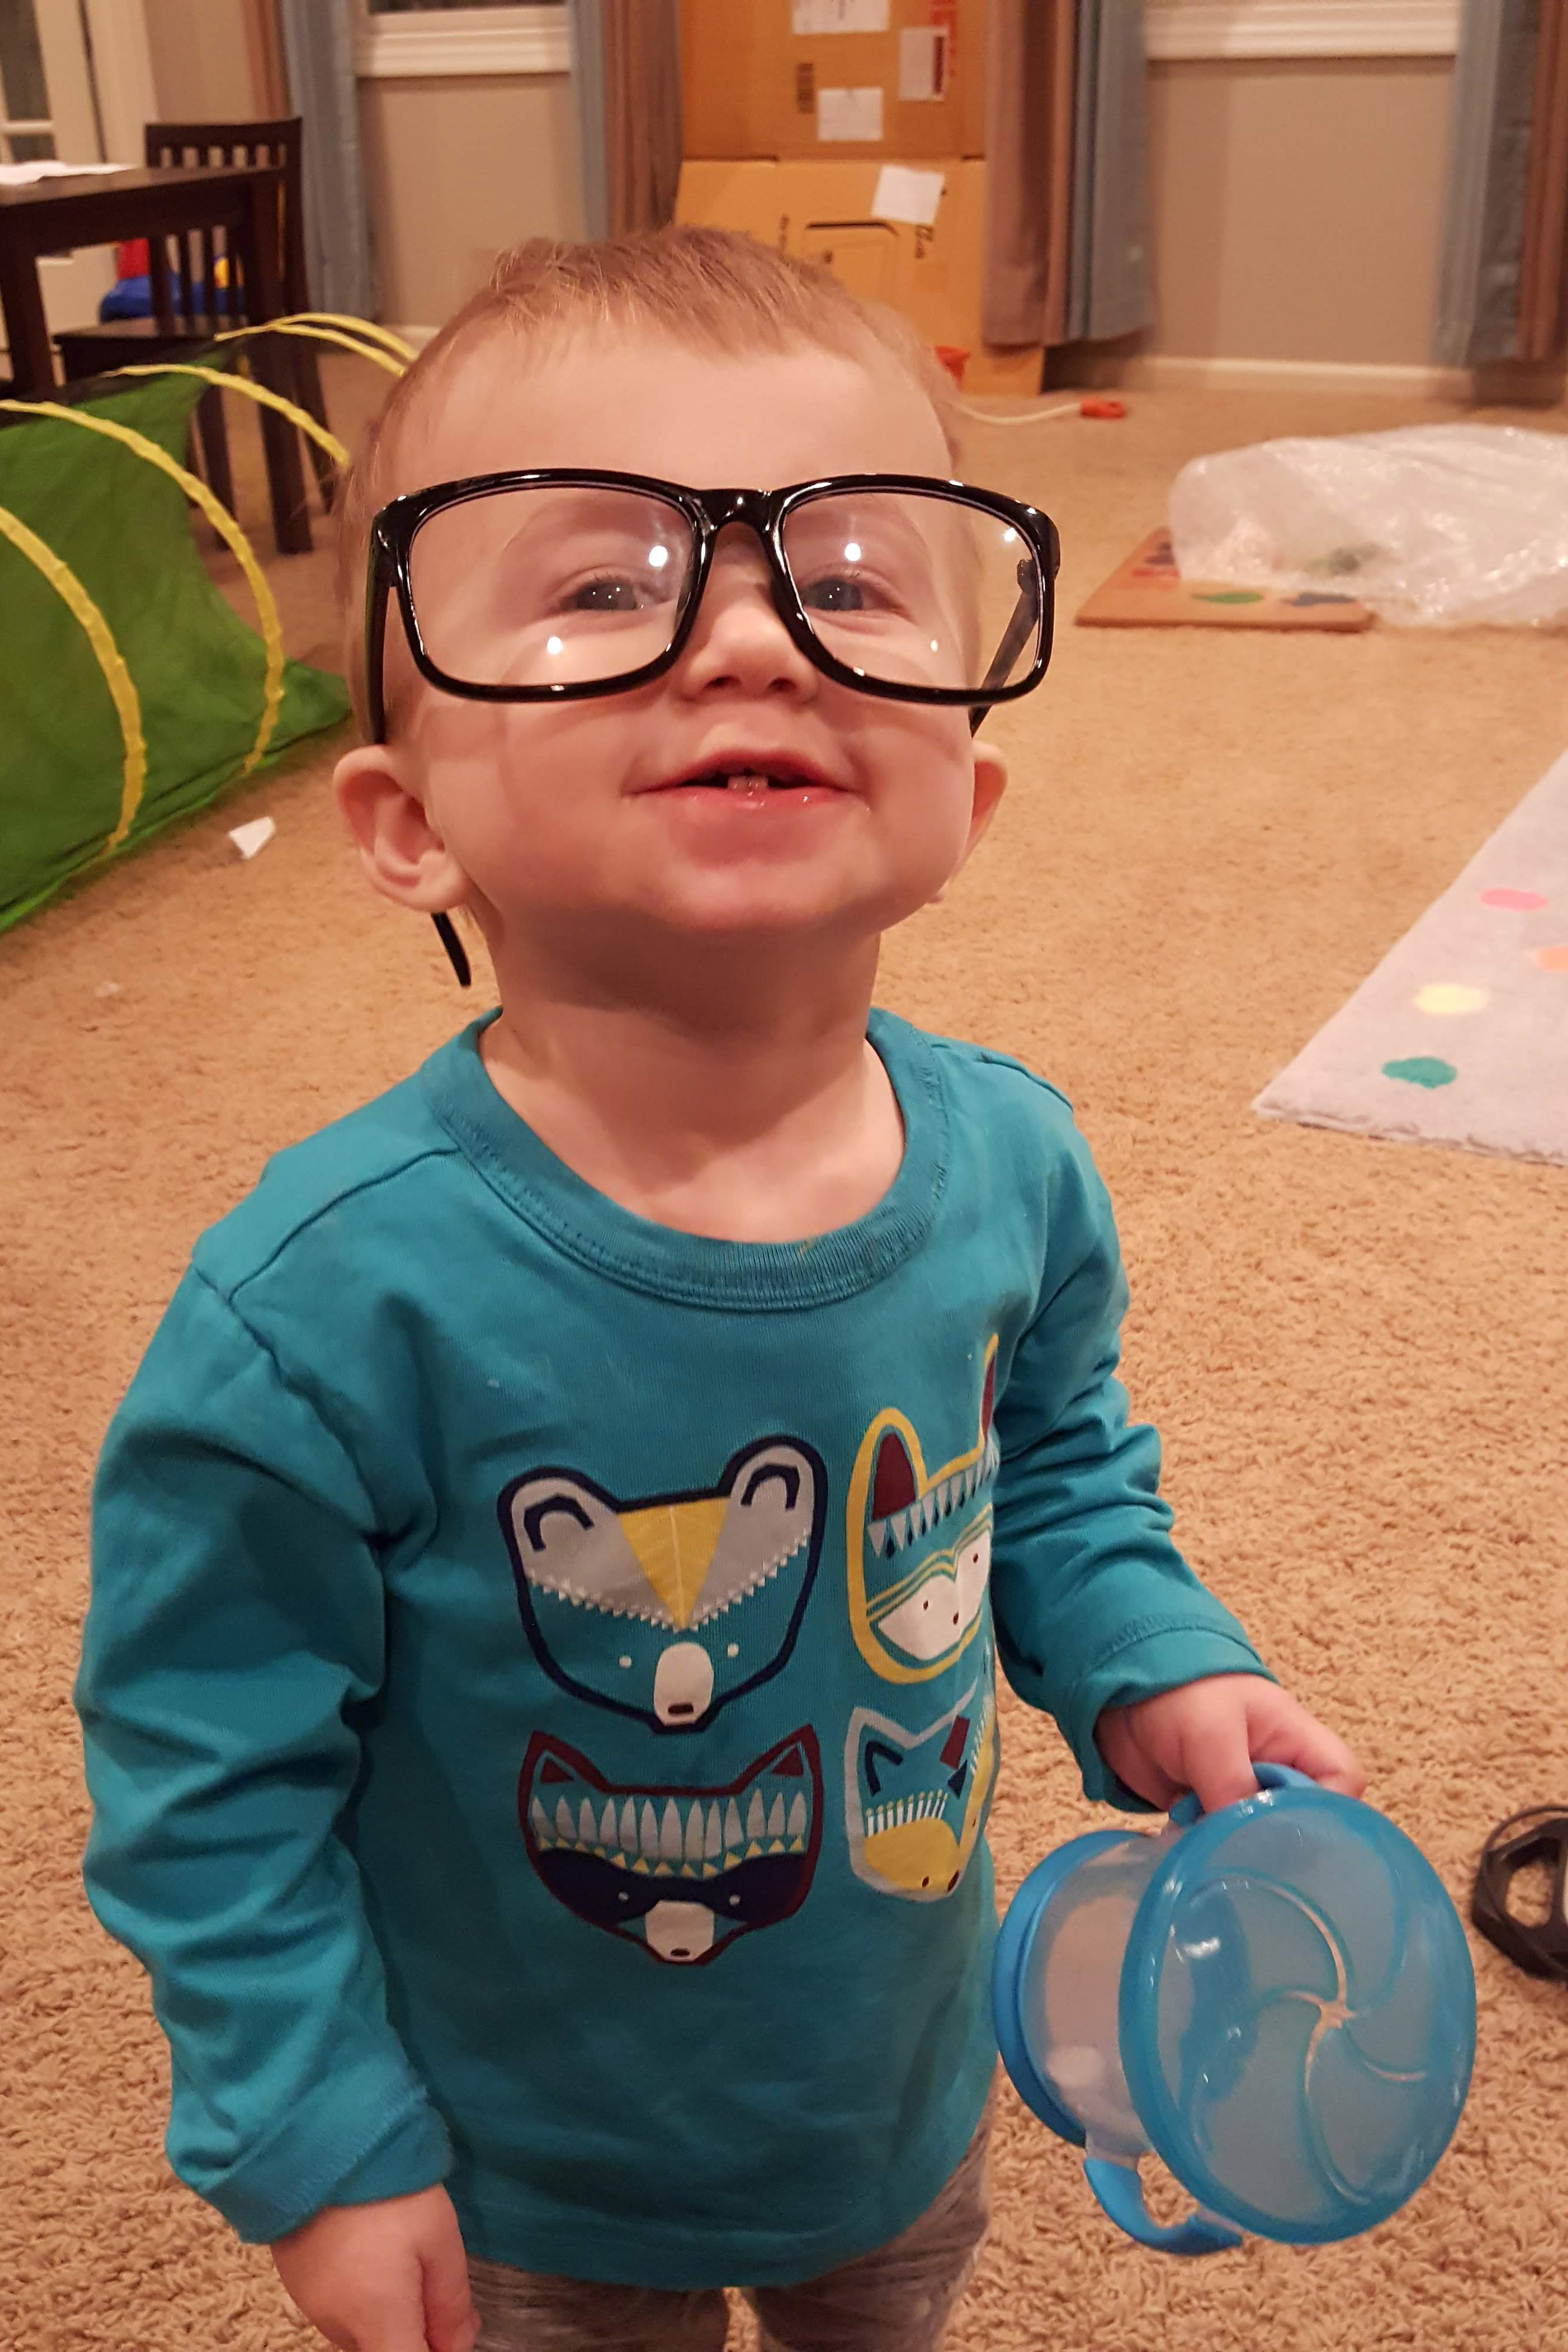 Tommy Wearing the Computer Glasses February 2019 | https://www.roseclearfield.com